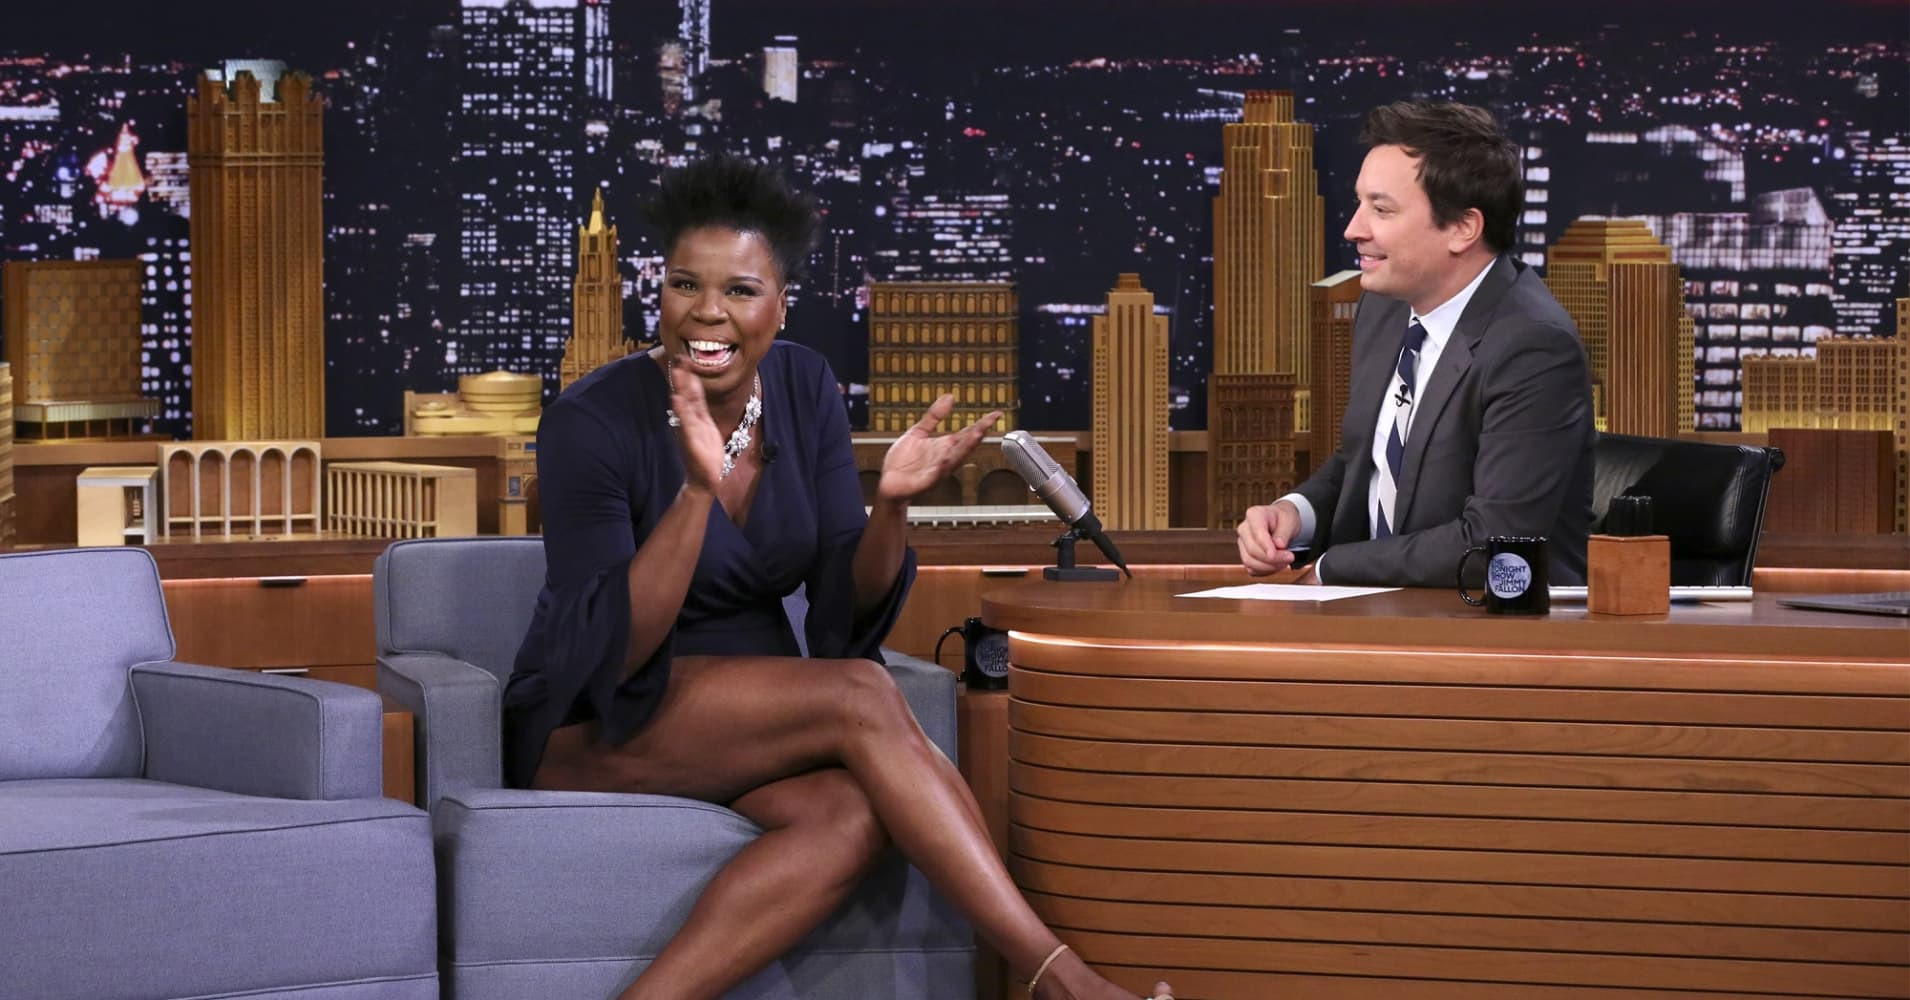 Comedian Leslie Jones during an interview with host of the Tonight Show Starring Jimmy Fallon